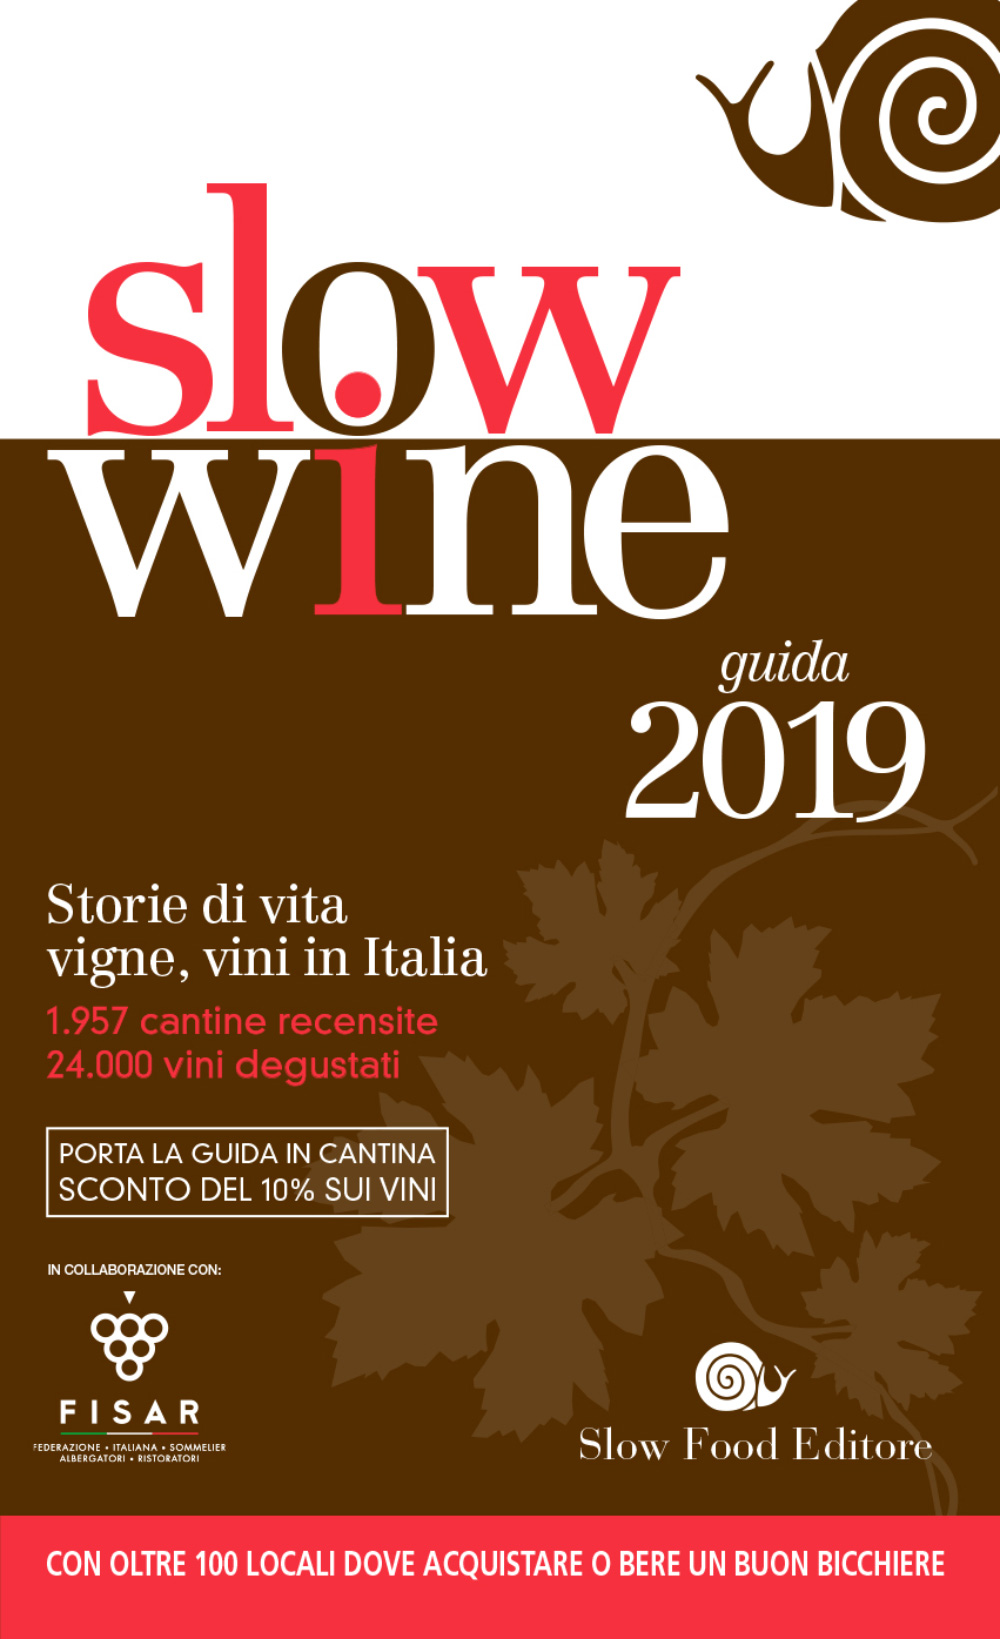 Slow Food Editore_Slow Wine_2019_Cover.jpg